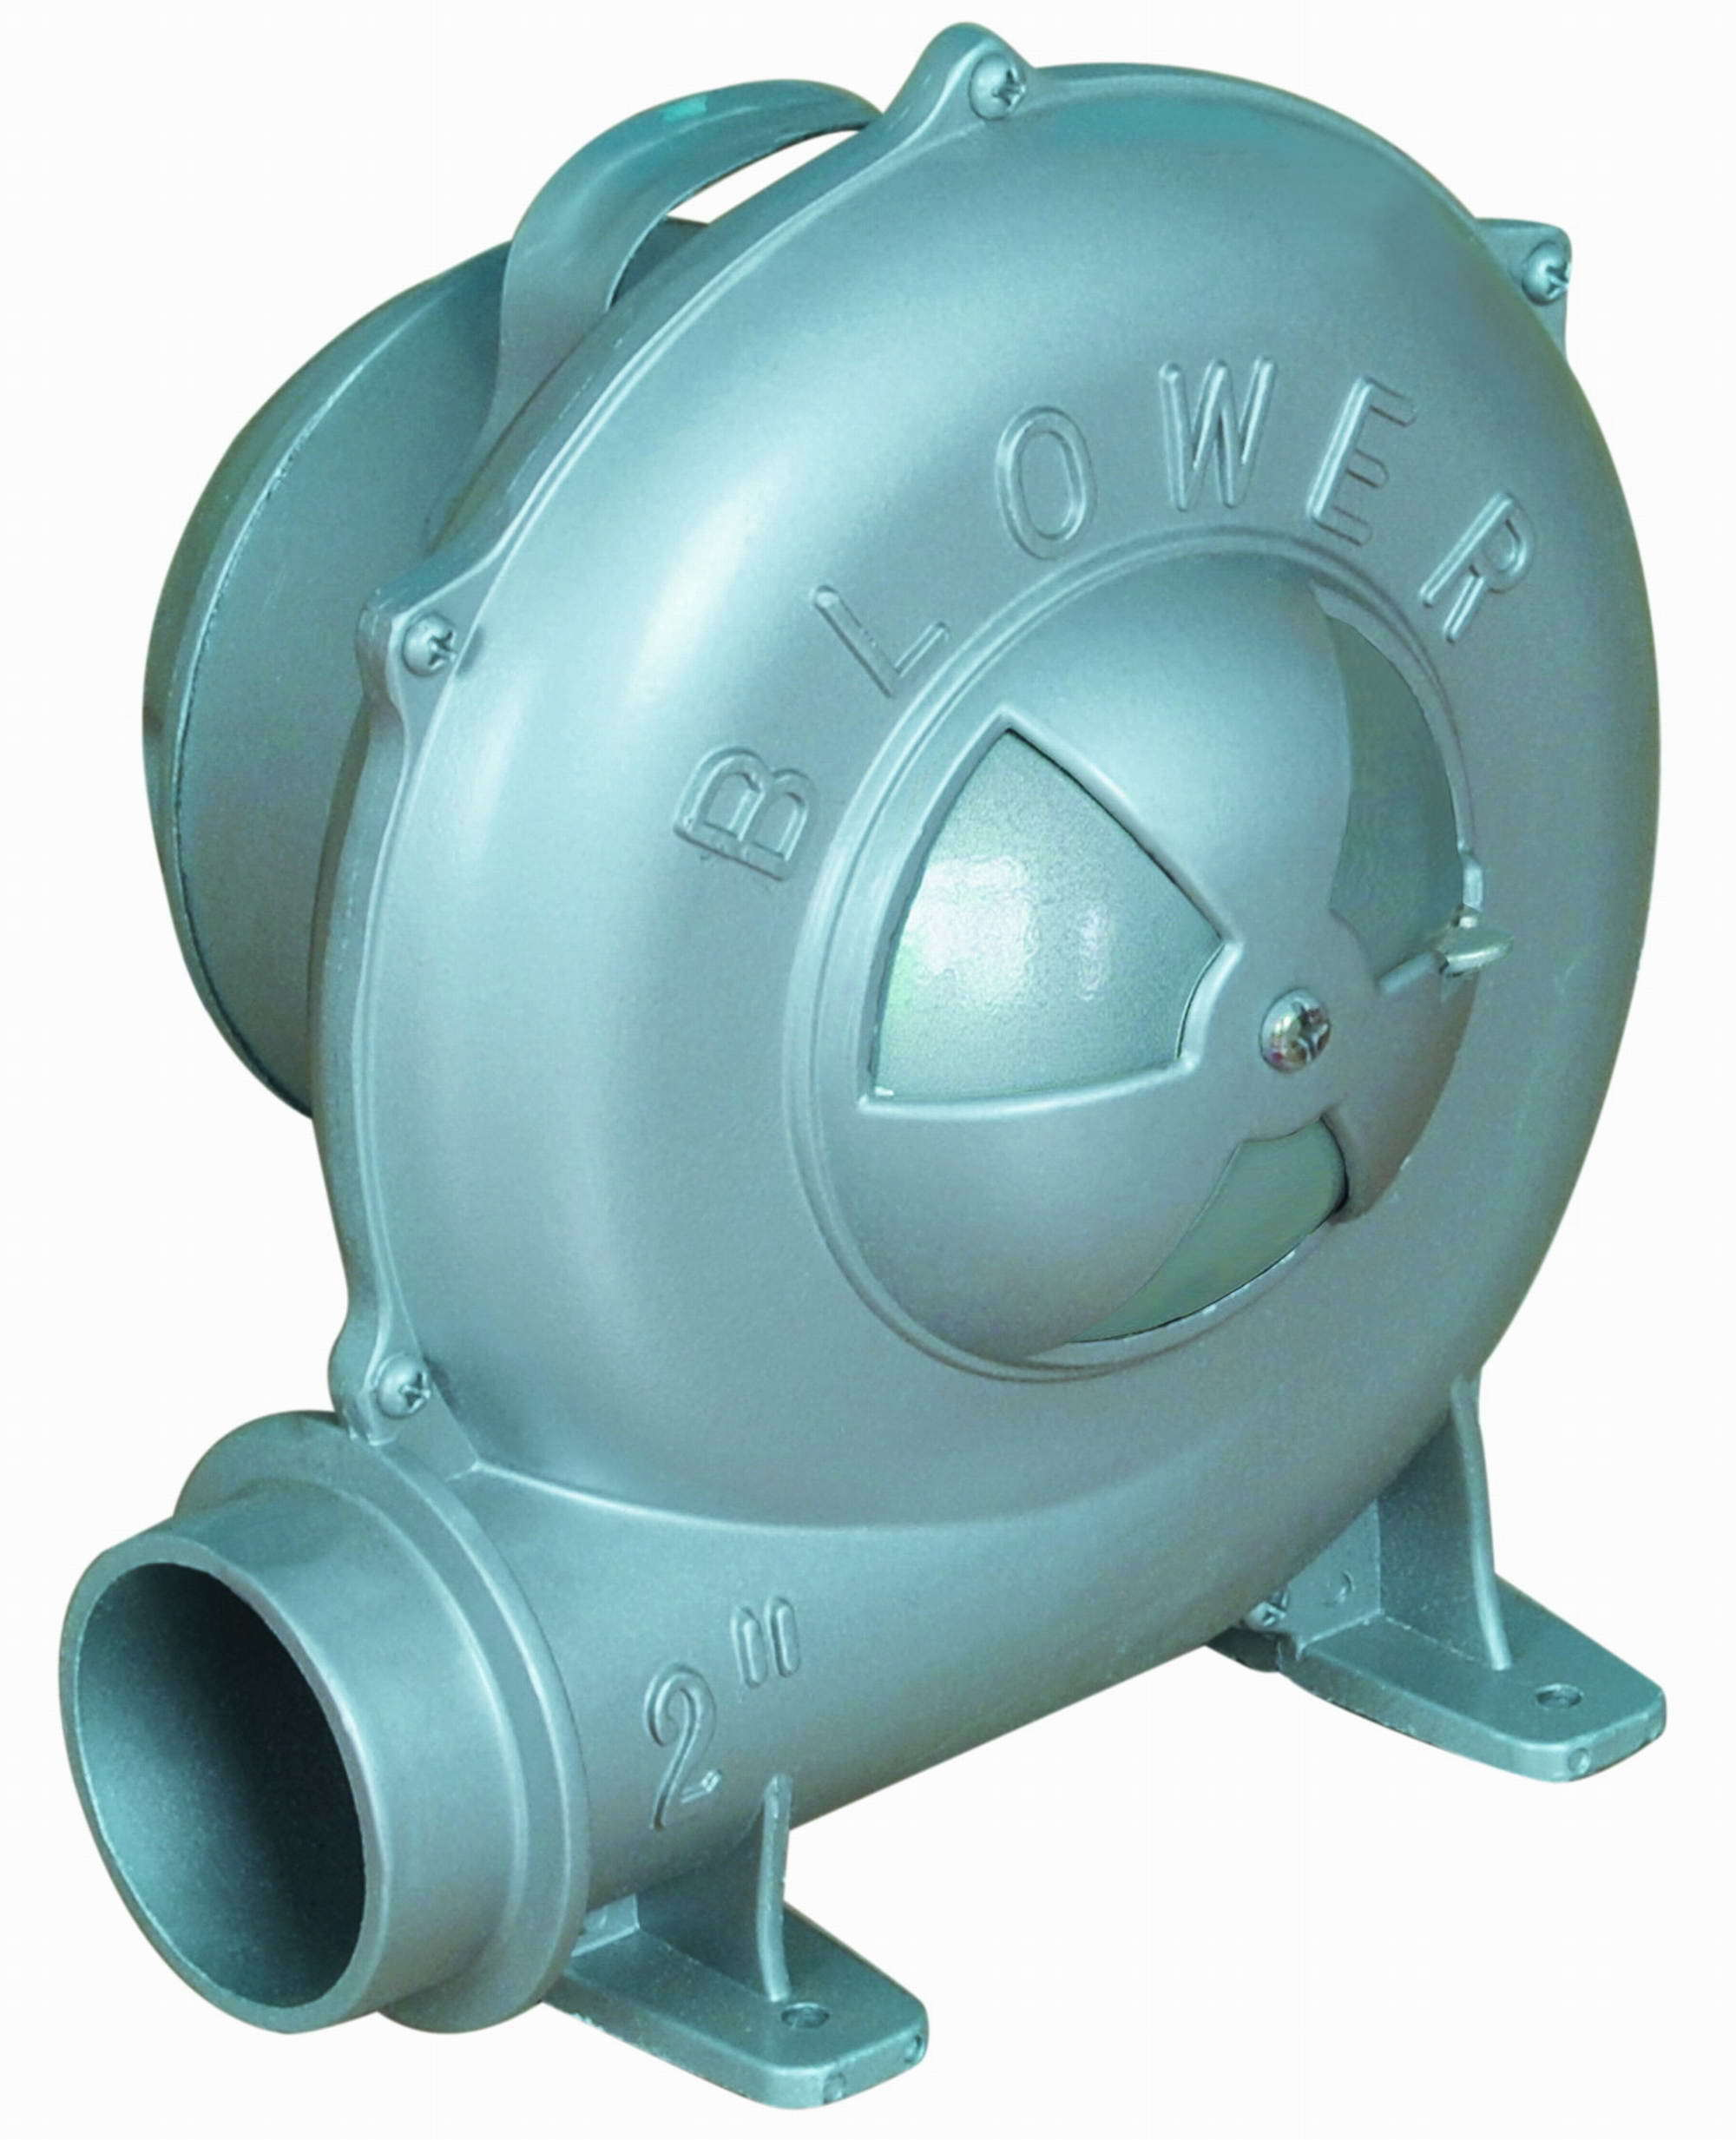 China Electric Blower 2 China Electric Blower Aluminum Blower #389392